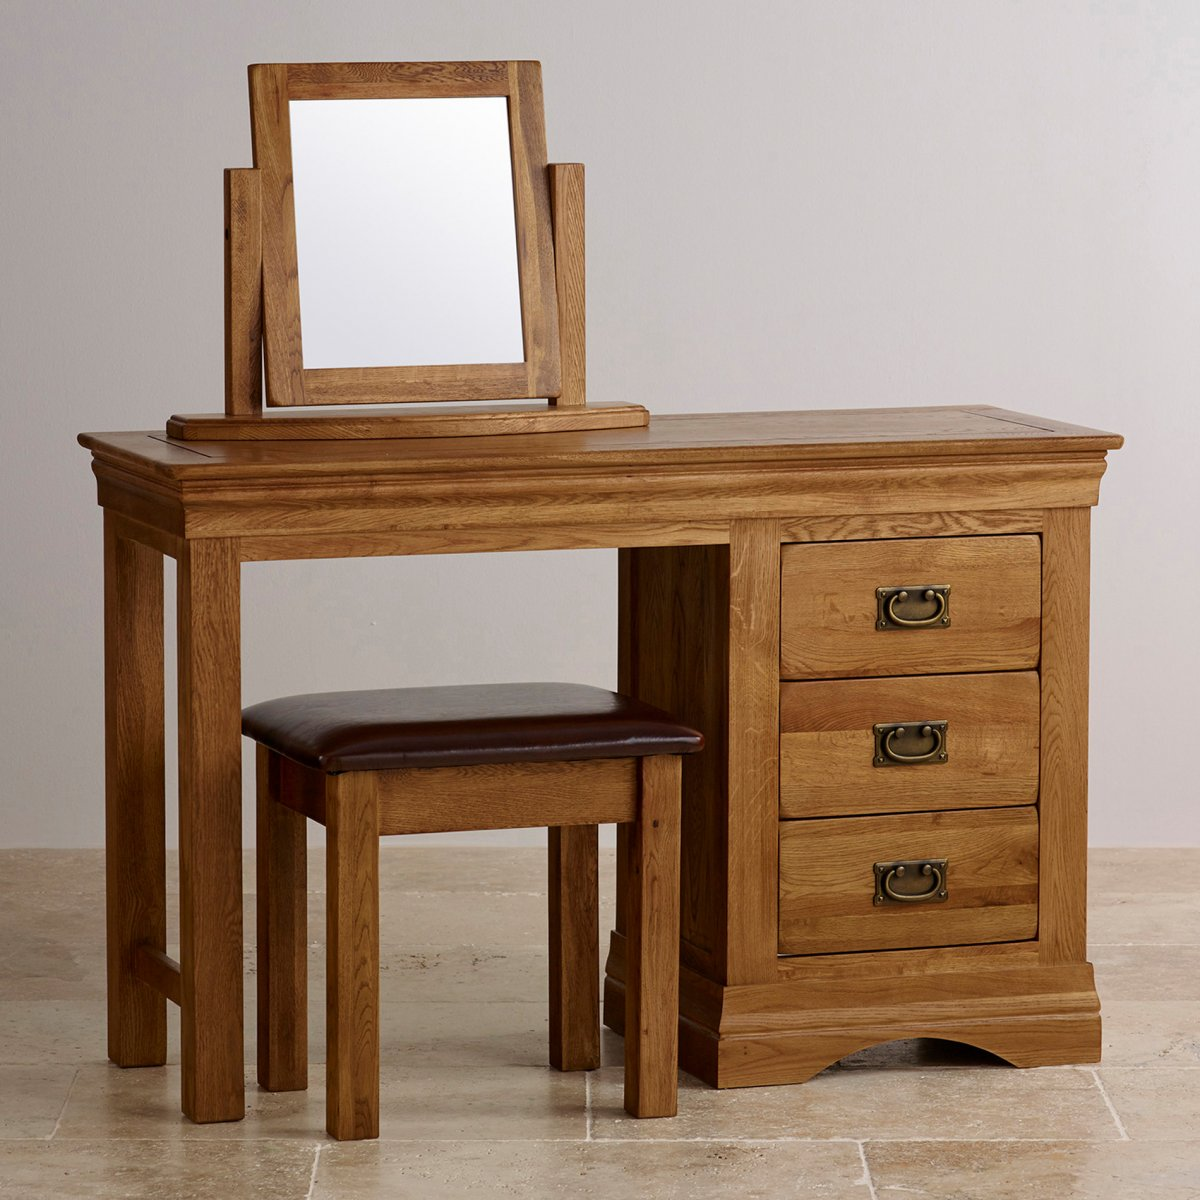 French Farmhouse Dressing Table Set in Solid Rustic Oak